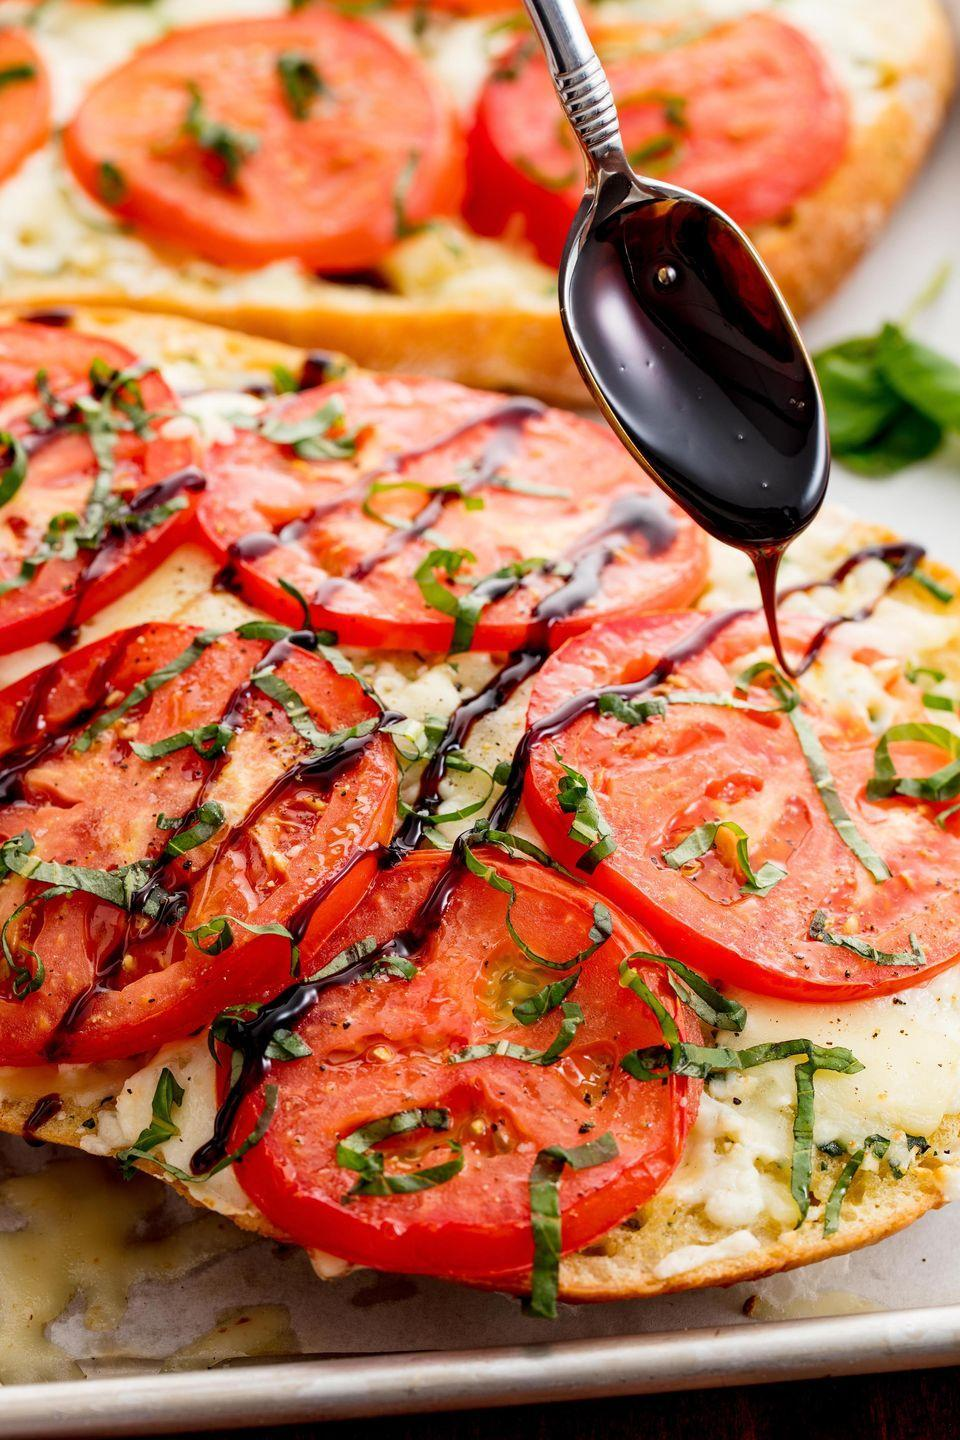 "<p>Melty mozzarella and fresh tomatoes give basic garlic bread a MAJOR upgrade.</p><p>Get the recipe from <a href=""/cooking/recipe-ideas/recipes/a51475/caprese-garlic-bread-recipe/"" data-ylk=""slk:Delish"" class=""link rapid-noclick-resp"">Delish</a>.</p>"